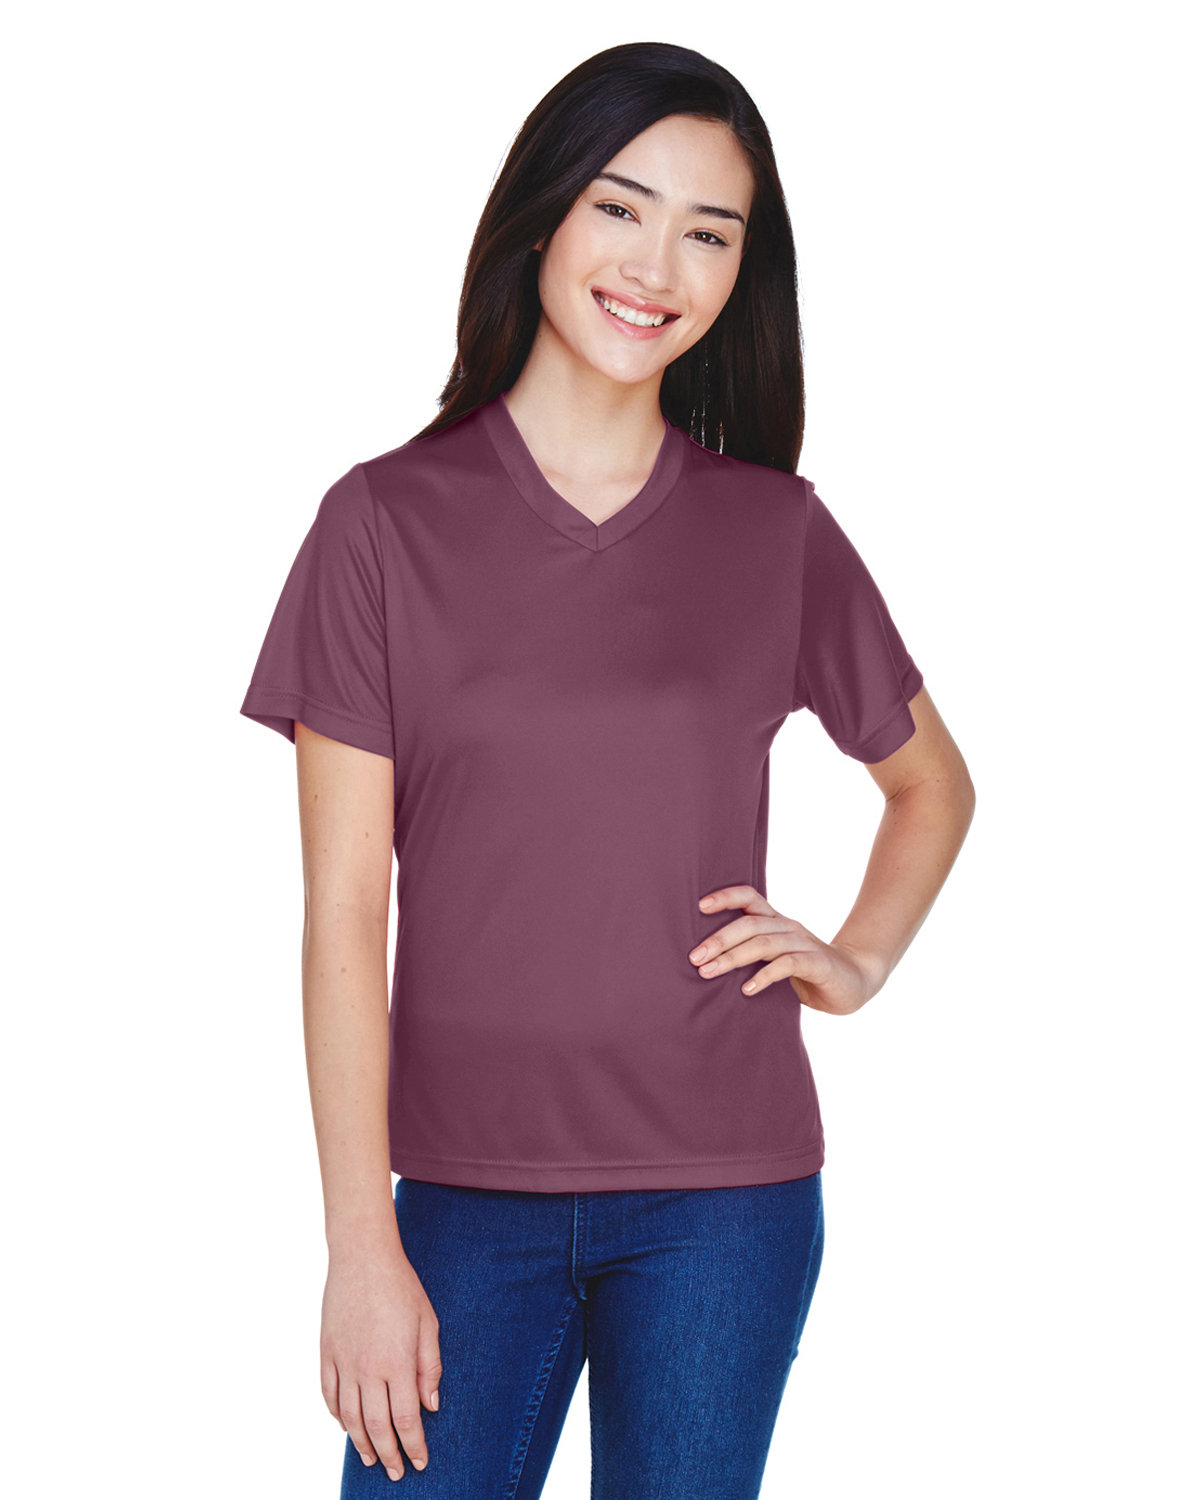 Team 365 Ladies' Zone Performance T-Shirt SPORT DRK MAROON